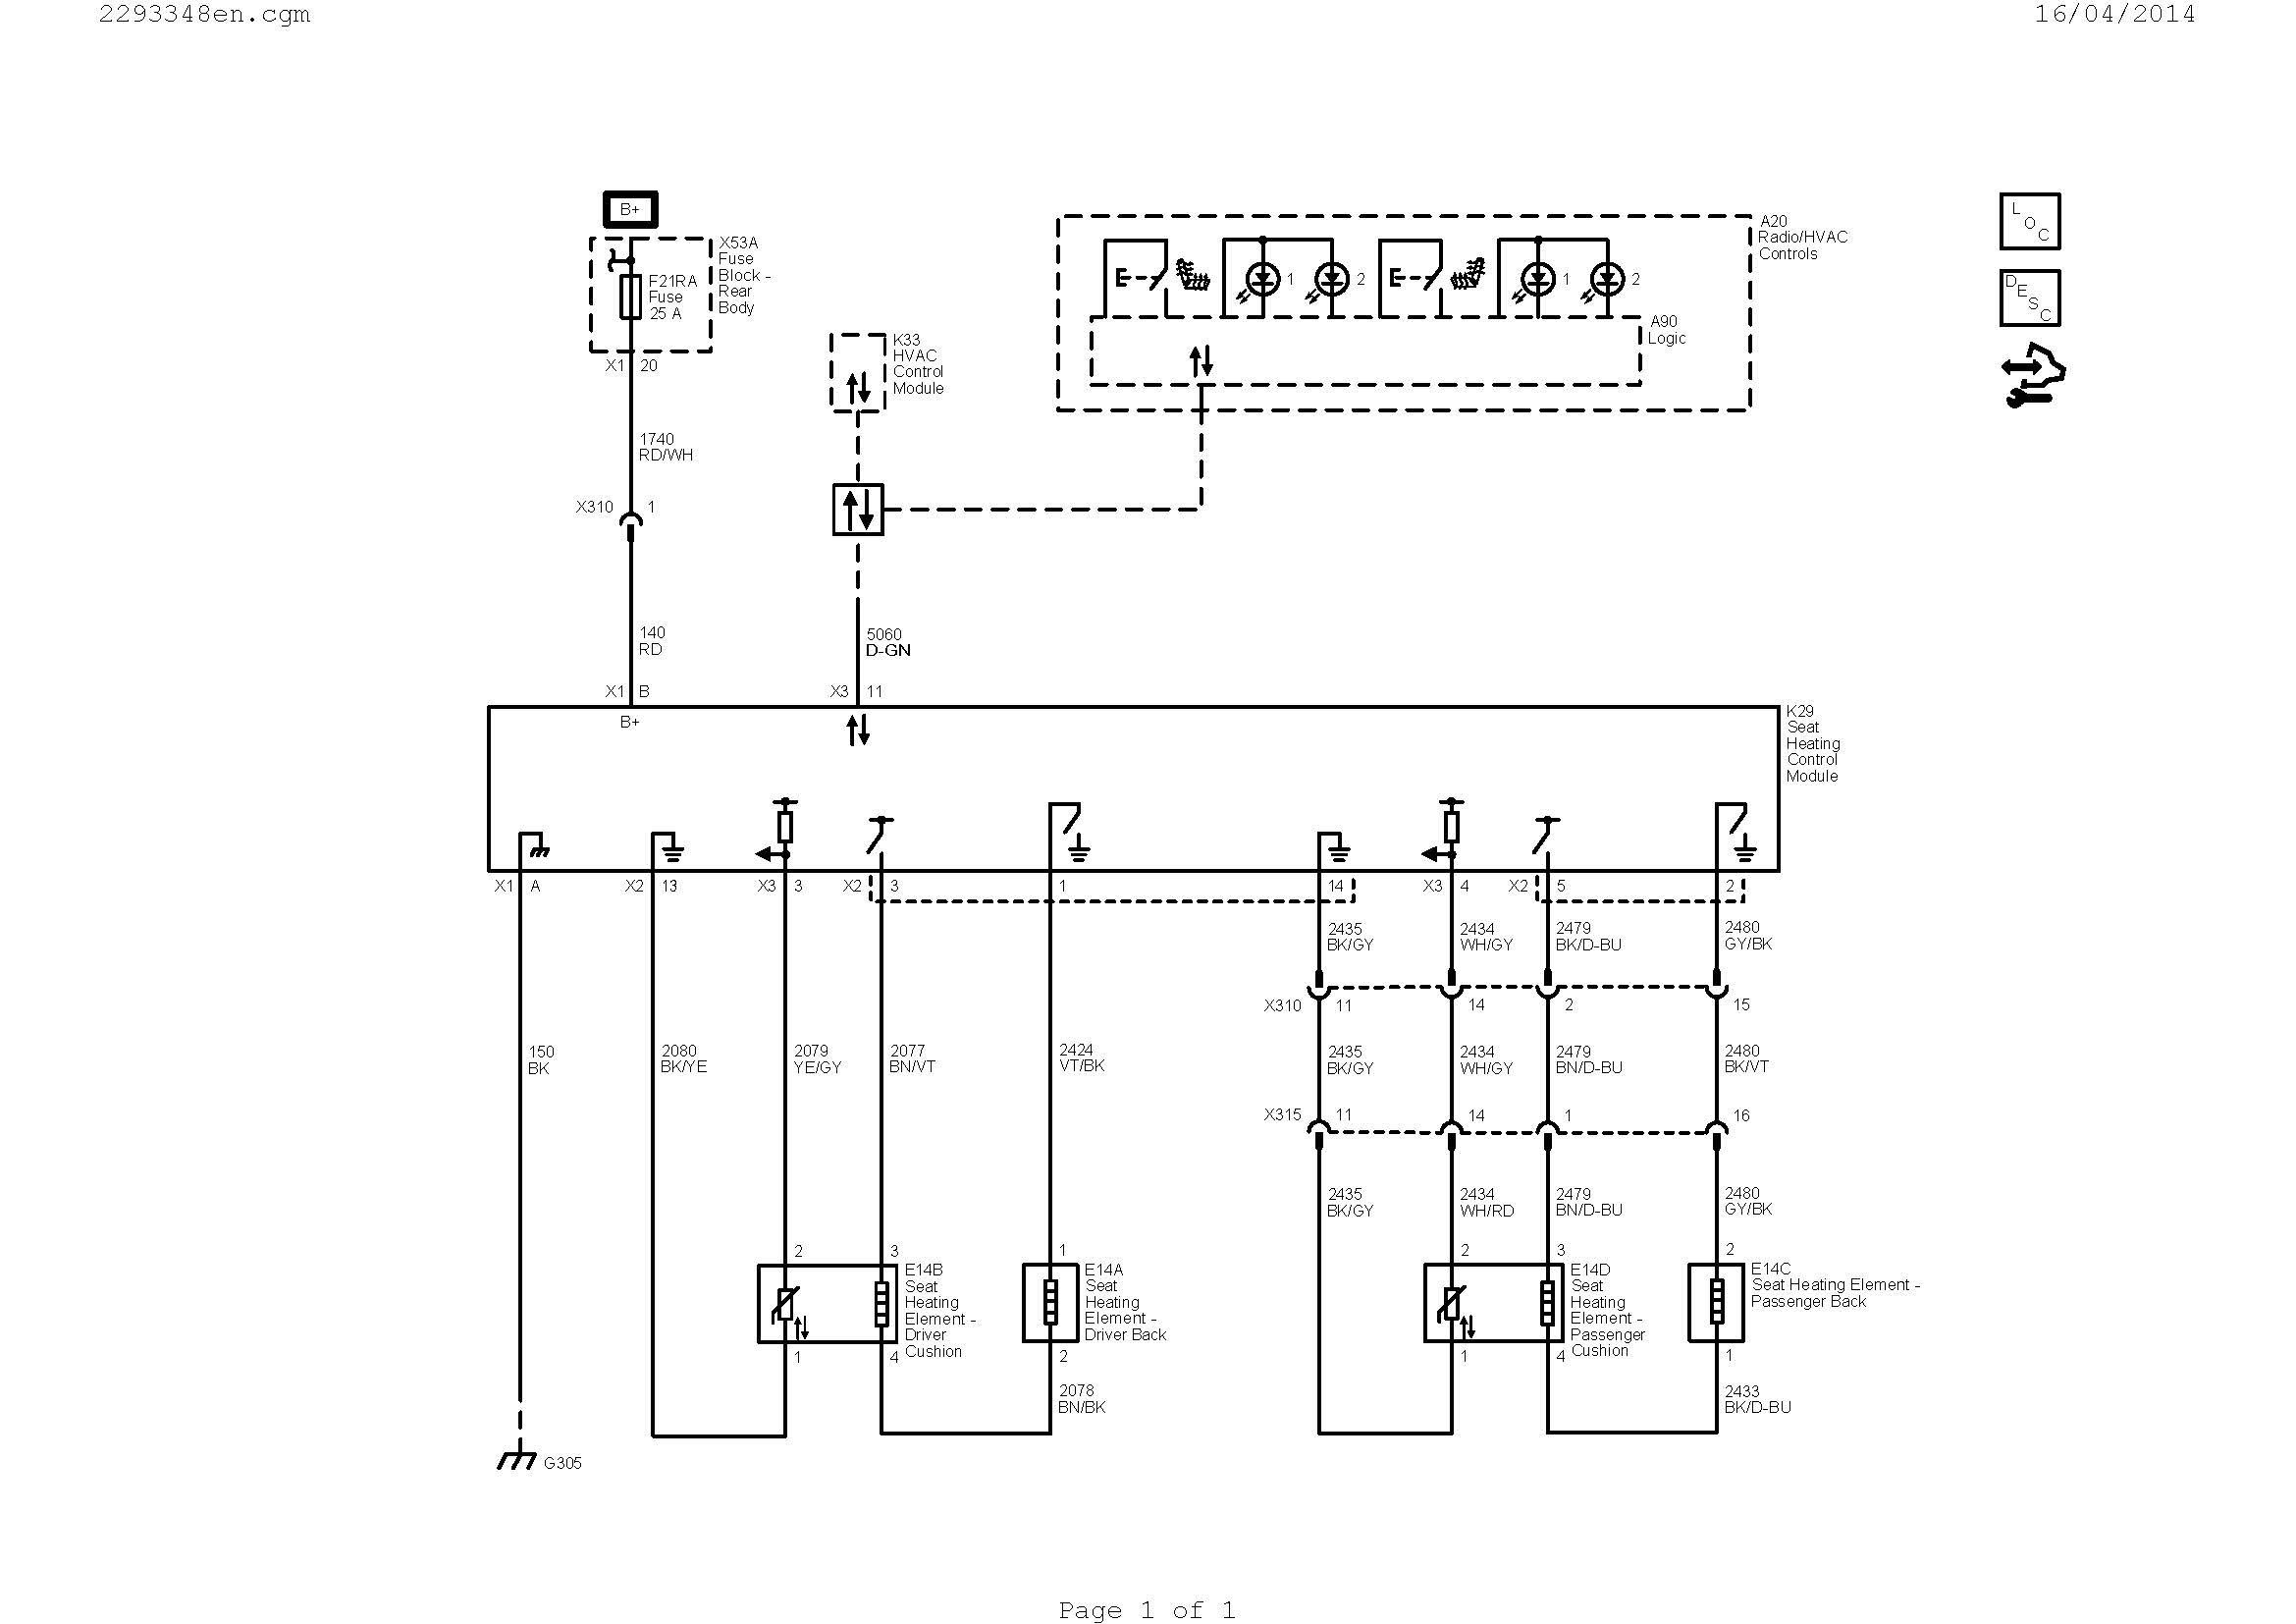 spaguts wiring diagram Download-Wiring Diagram for A Relay Switch Save Wiring Diagram Ac Valid Hvac 25 Best Circuit 6-j